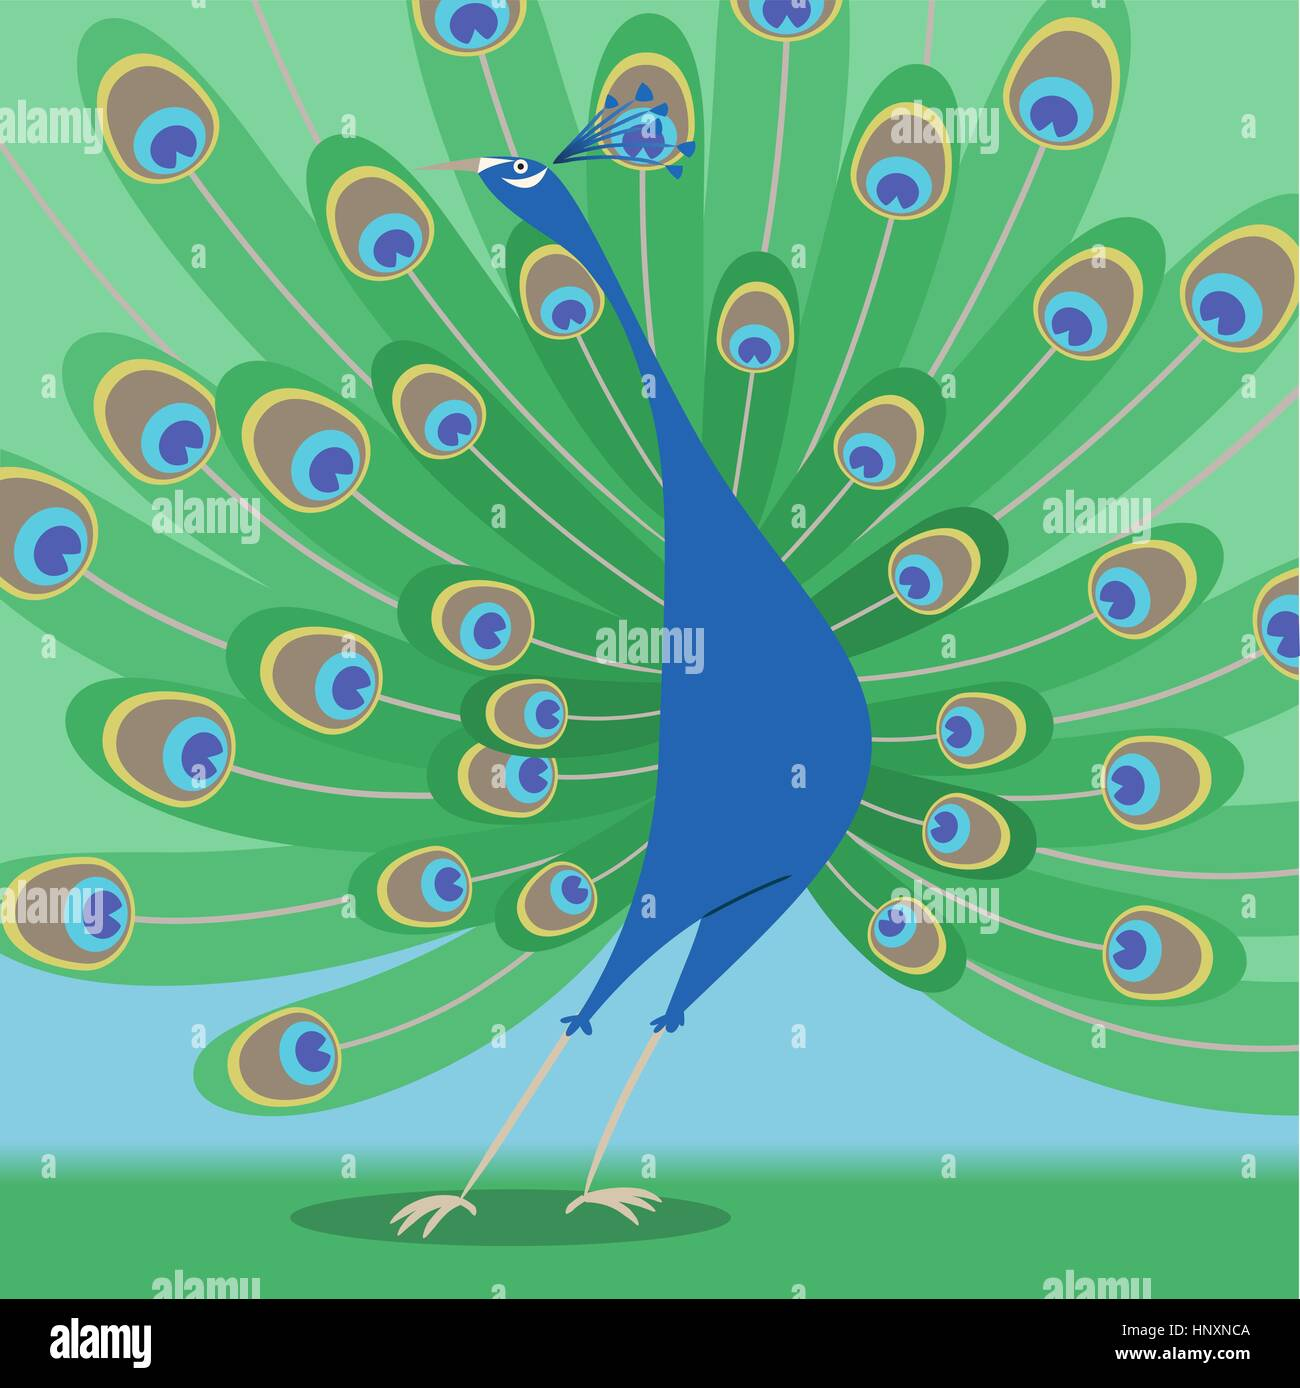 Multicolour standing peacock with beautiful feathers vector illustration. - Stock Vector